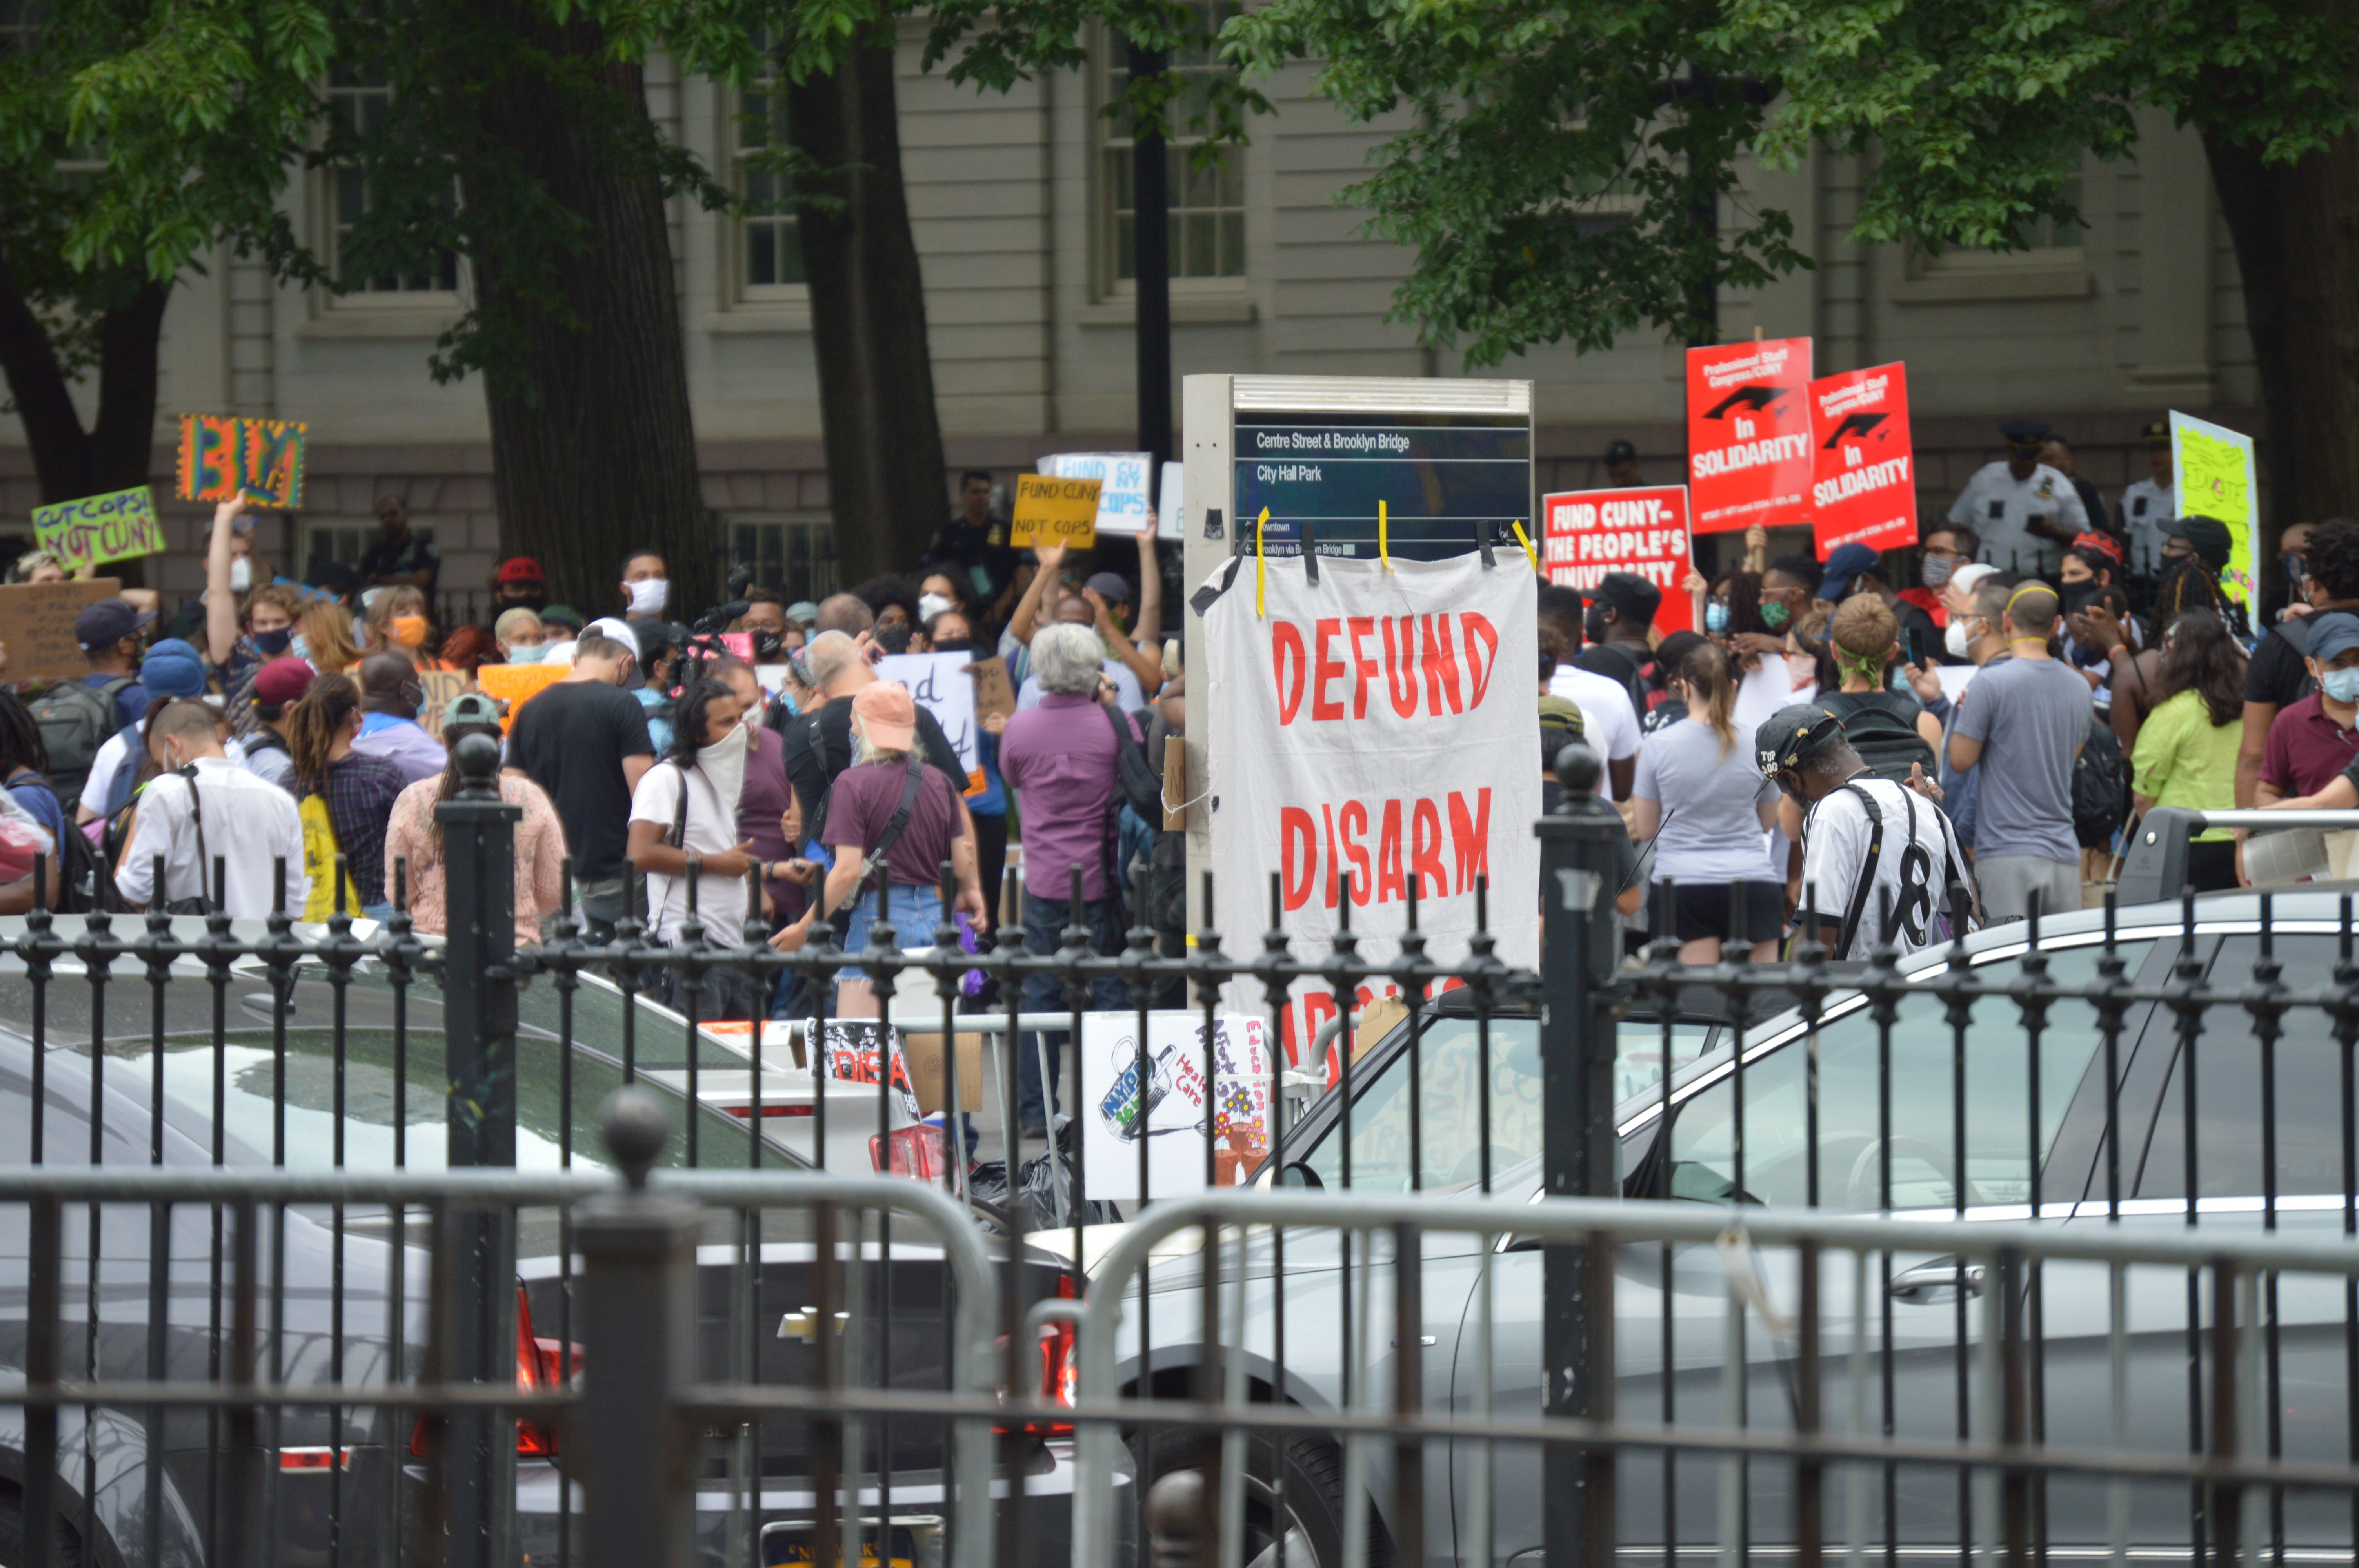 Demonstrators gathered in front of New York City Hall during Occupy City Hall protest to demand defunding NYPD & justice for George Floyd in Downtown Manhattan on June 27, 2020.